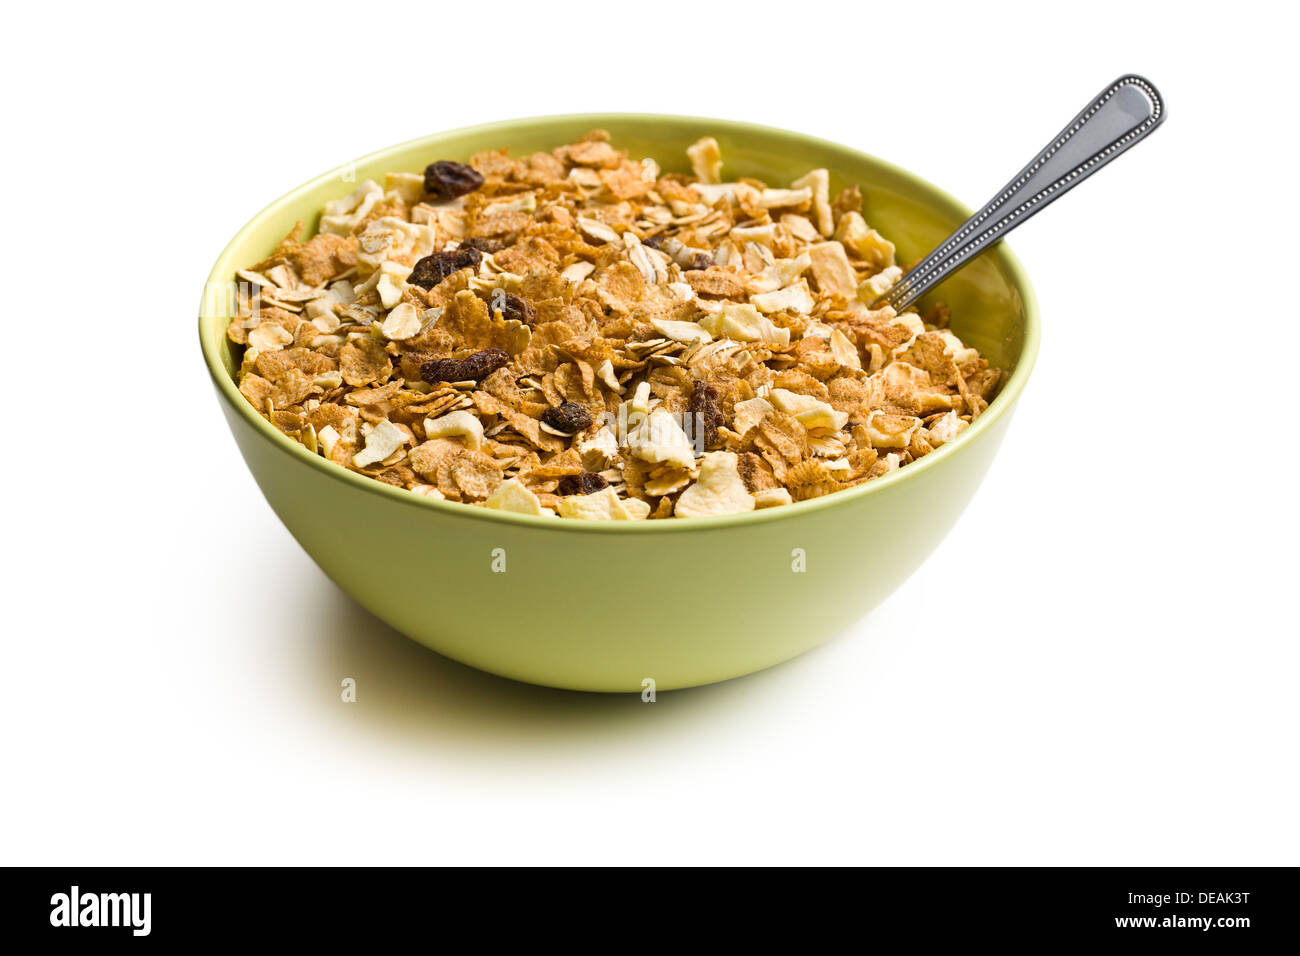 crunchy muesli in bowl on white background - Stock Image